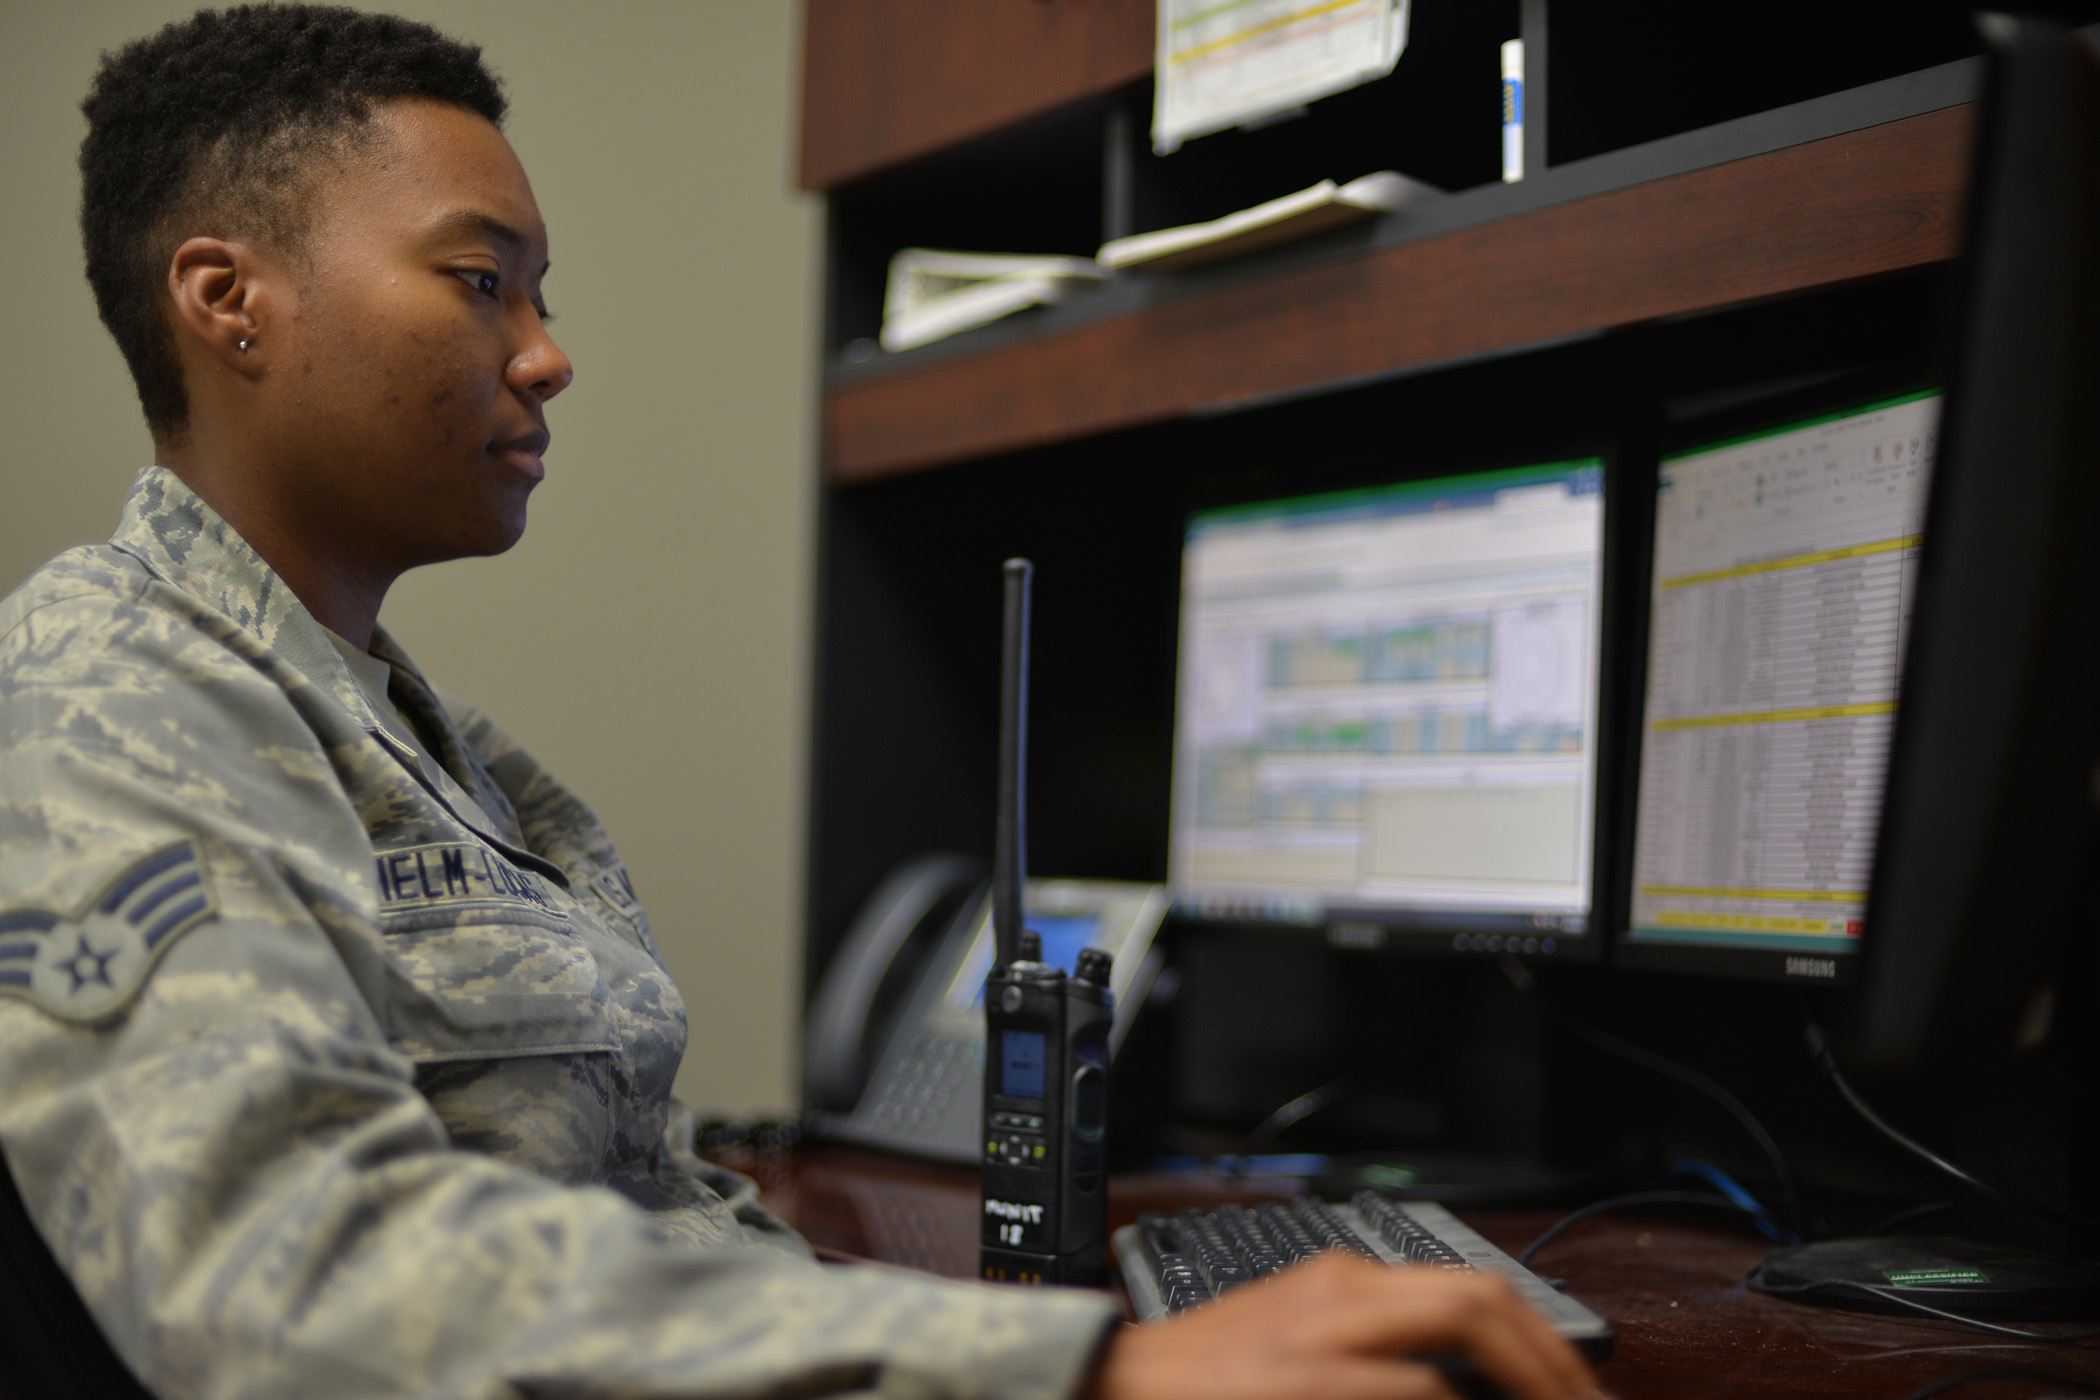 Senior Airman Jasmine Helm-Lucas working with data in June 2017 at Malmstrom Air Force Base in Montana. (Airman 1st Class Daniel Brosam/Air Force)